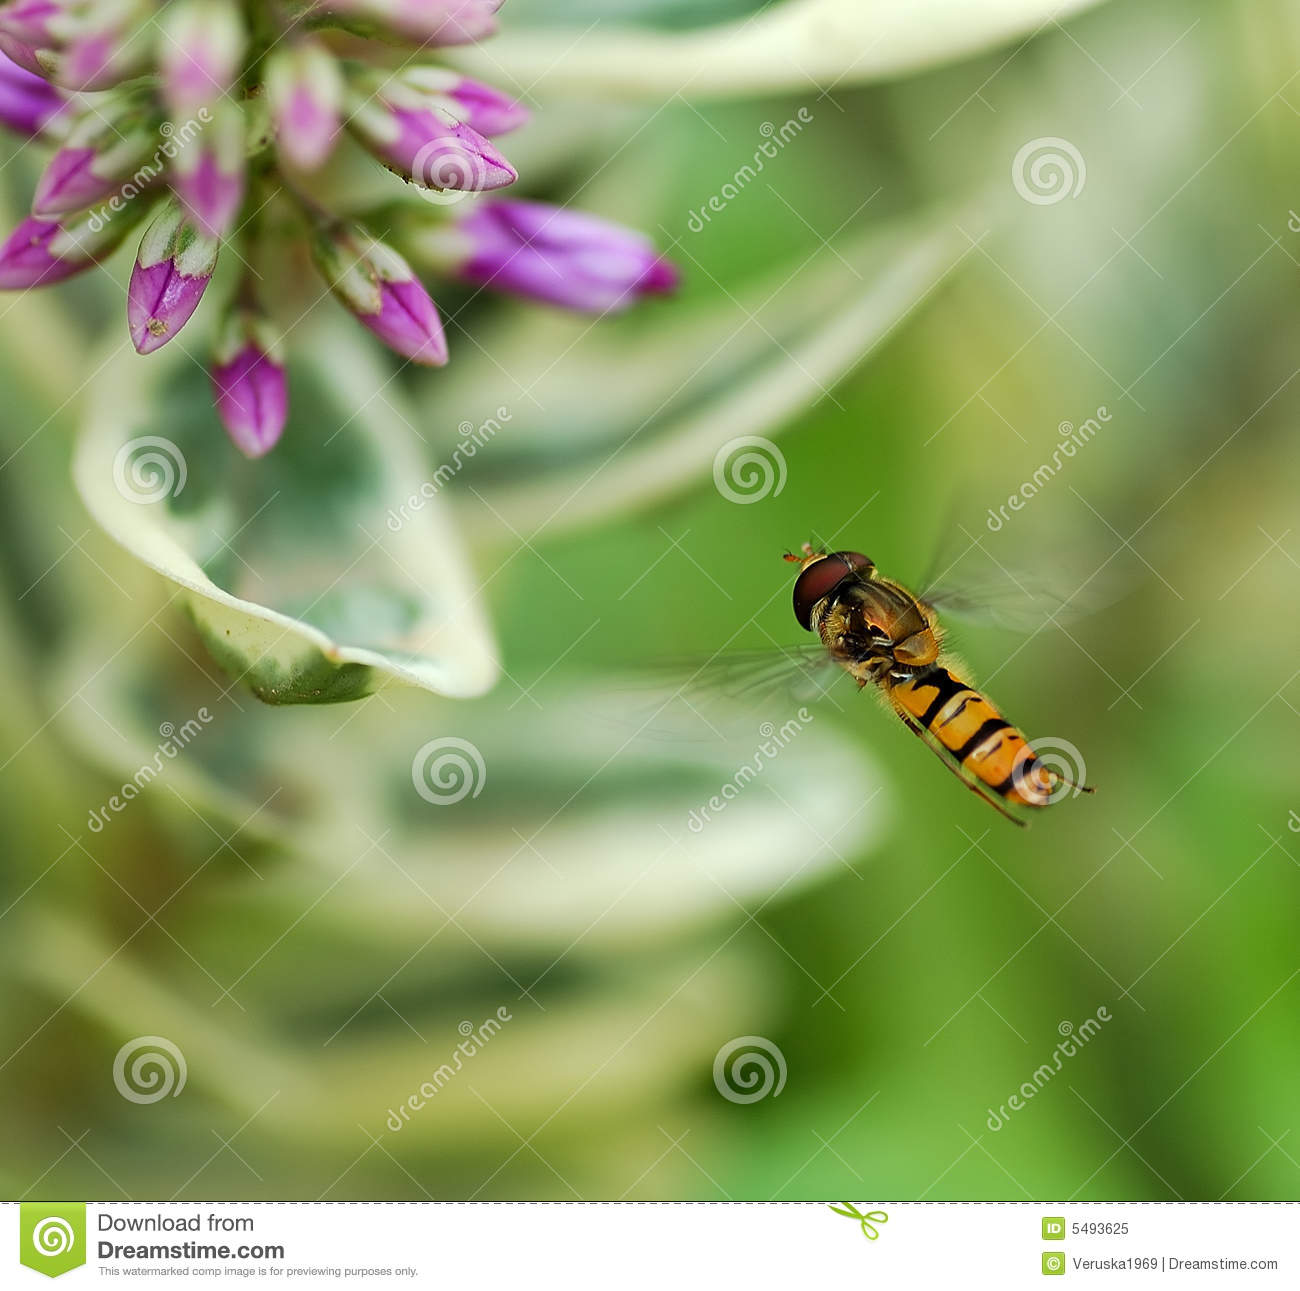 Insect flying